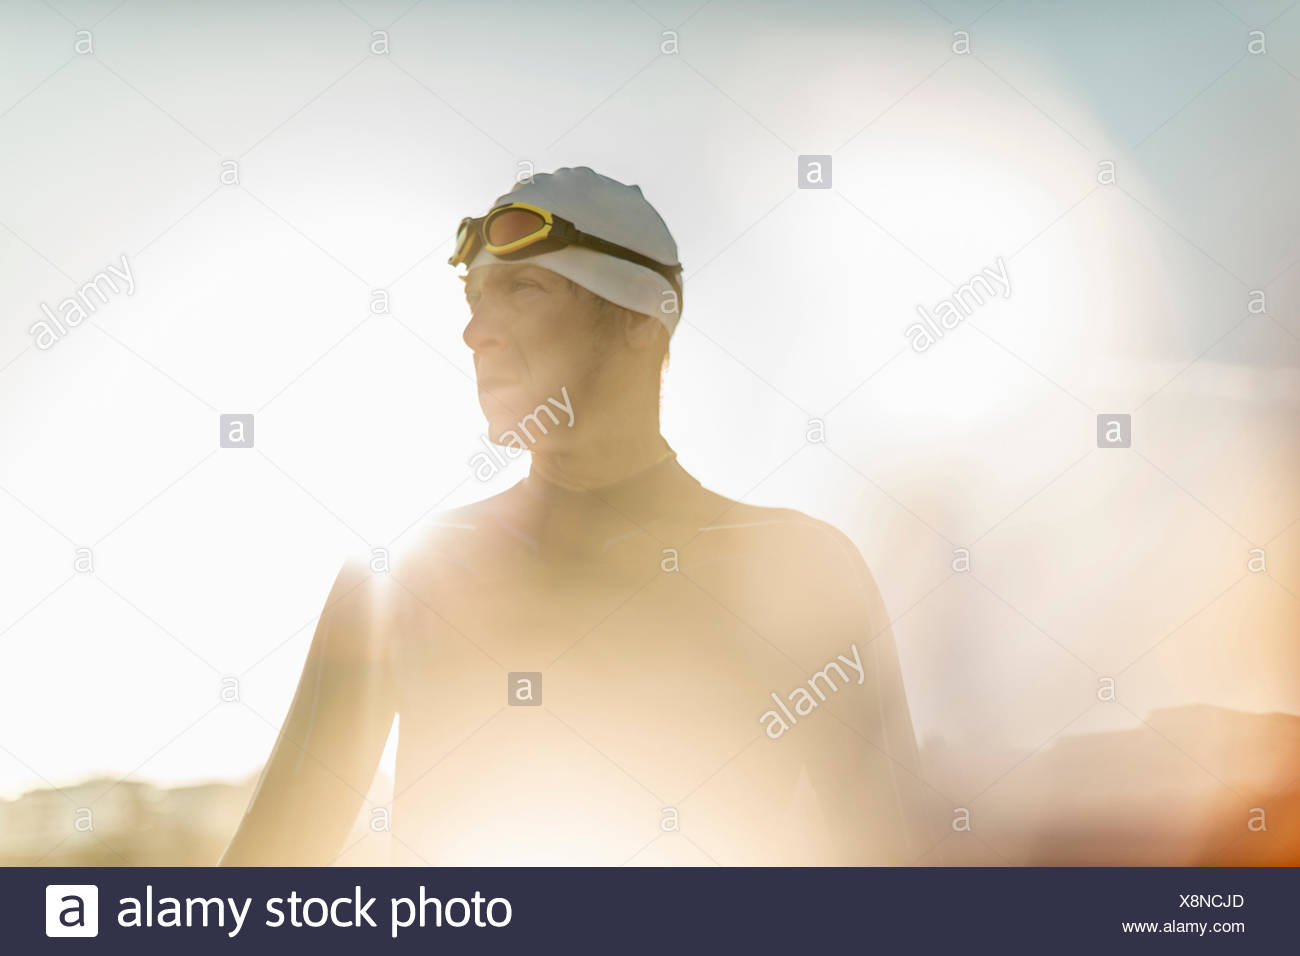 A swimmer in a wet suit, swimming hat and goggles. - Stock Image